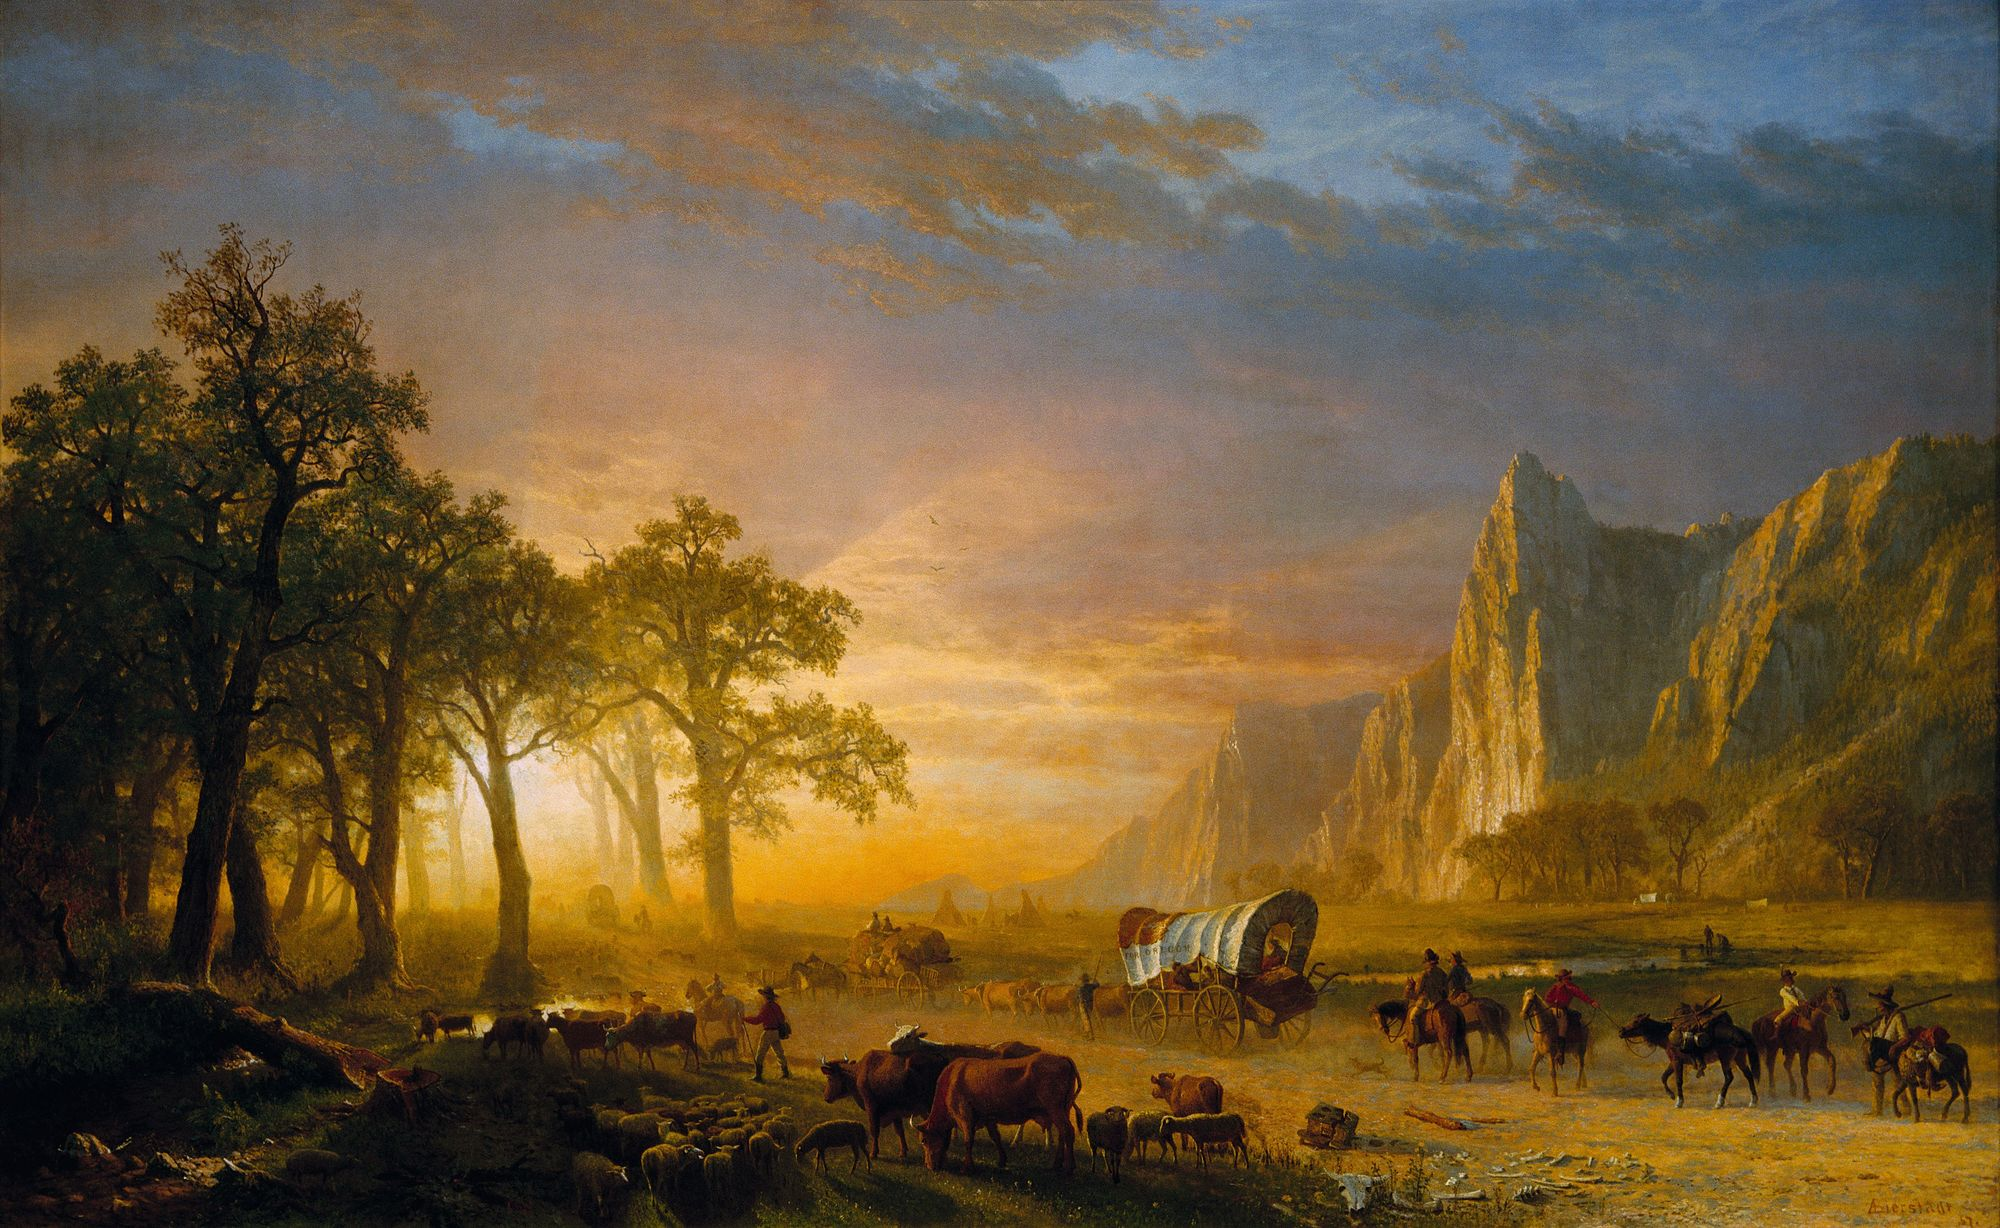 Emigrants Crossing the Plains, Albert Bierstadt, 1869.